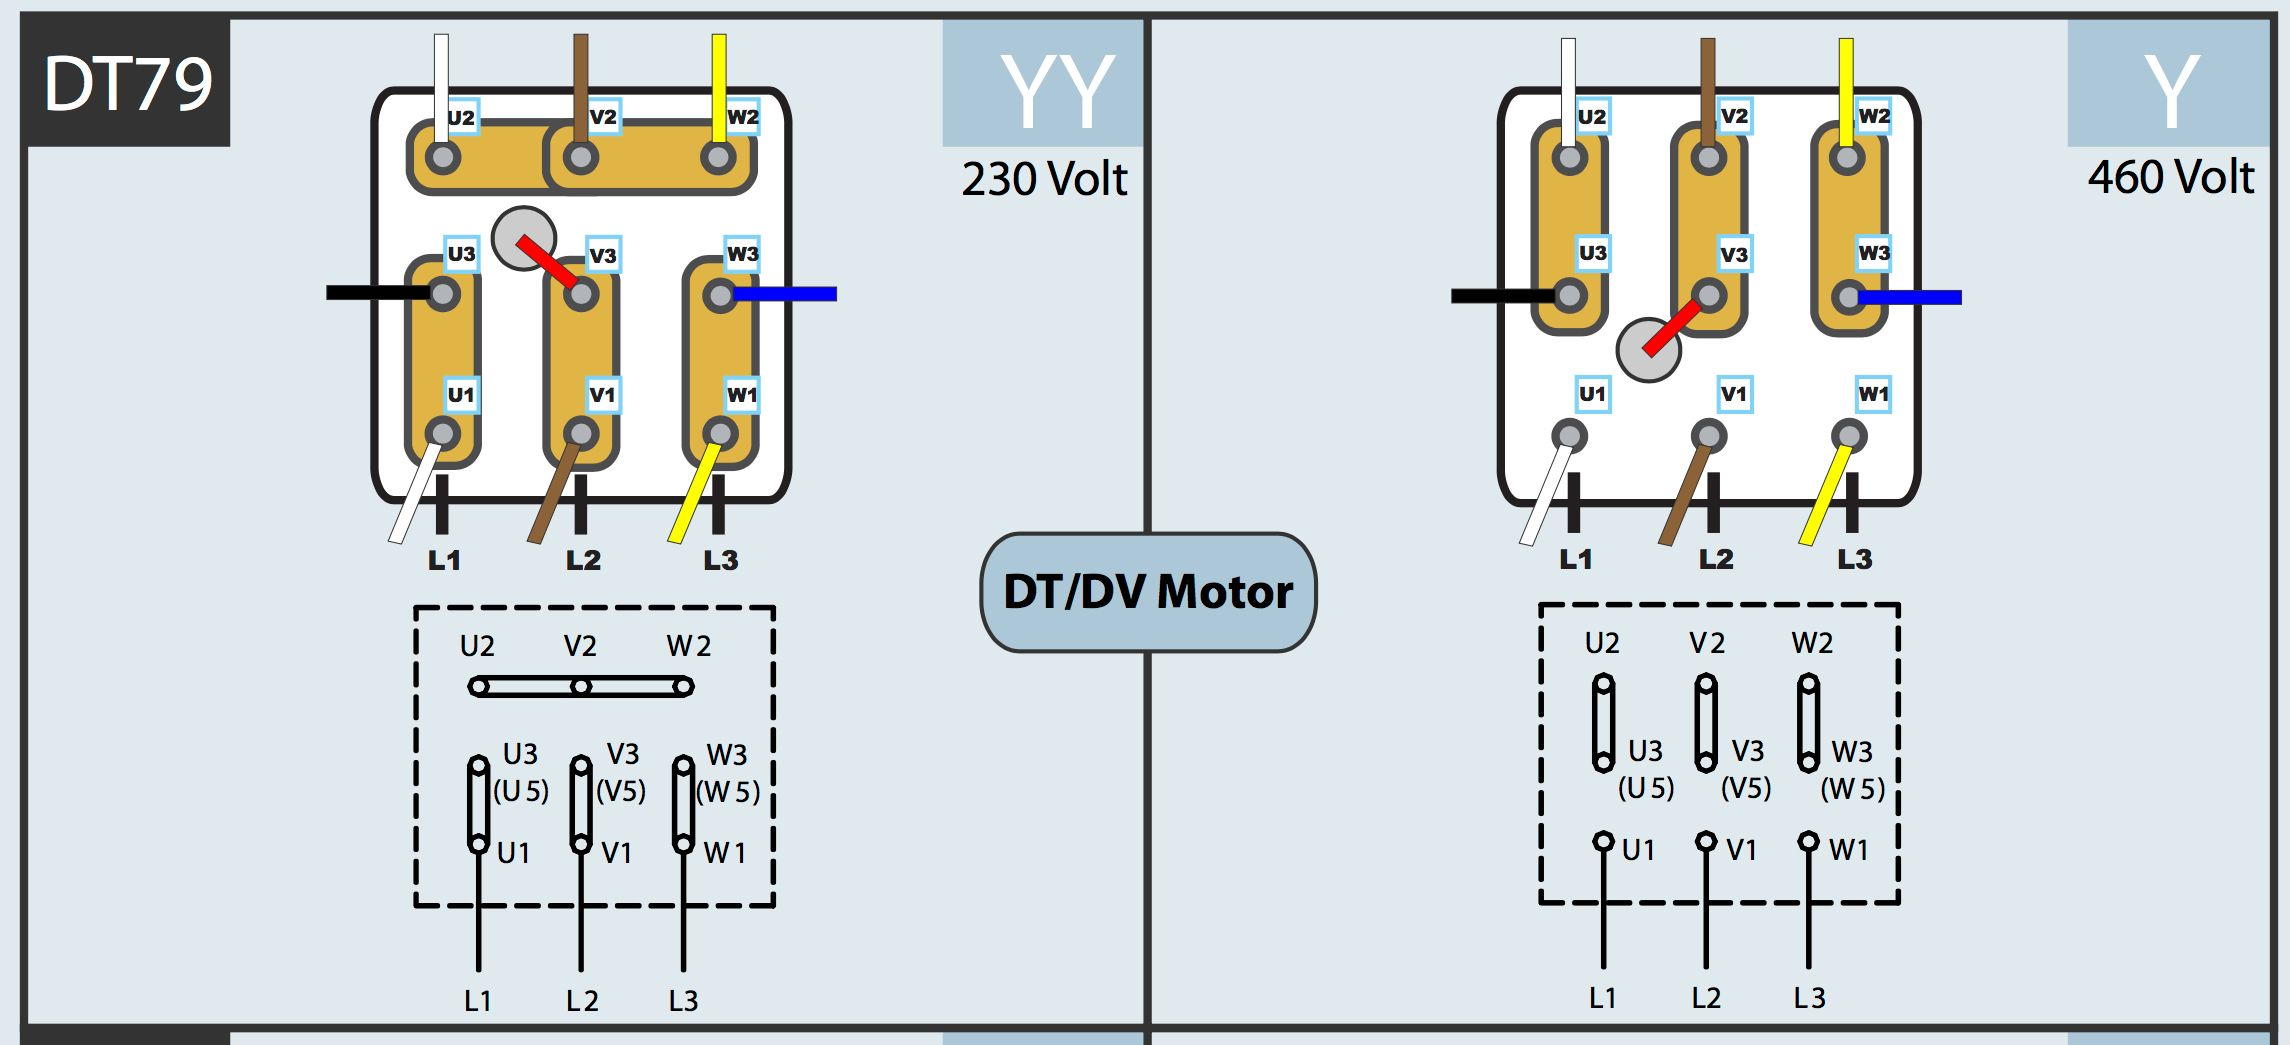 Dt79 Jpg 2290 1045 Diagram Math Connection